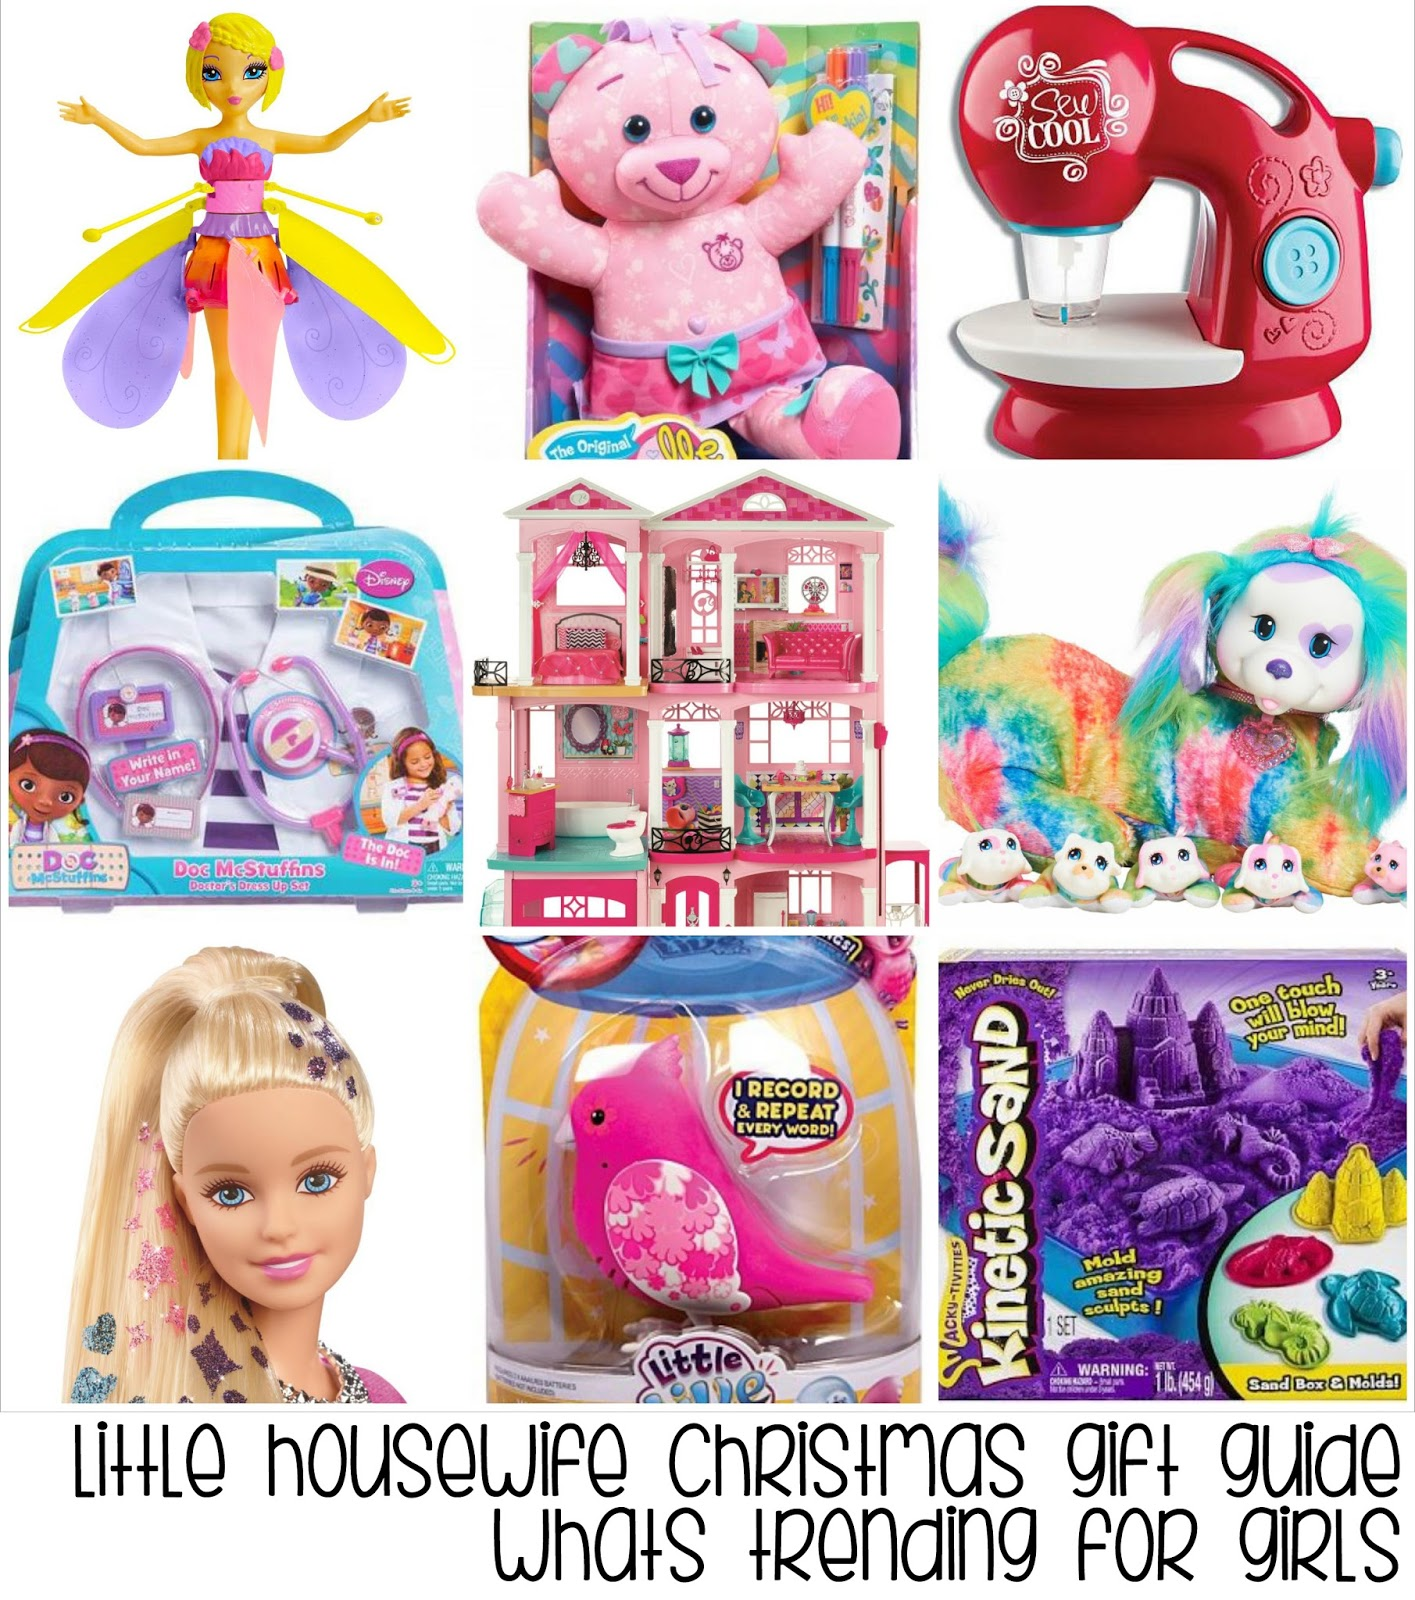 Little Housewife Christmas Gift Guide What s Trending for Girls